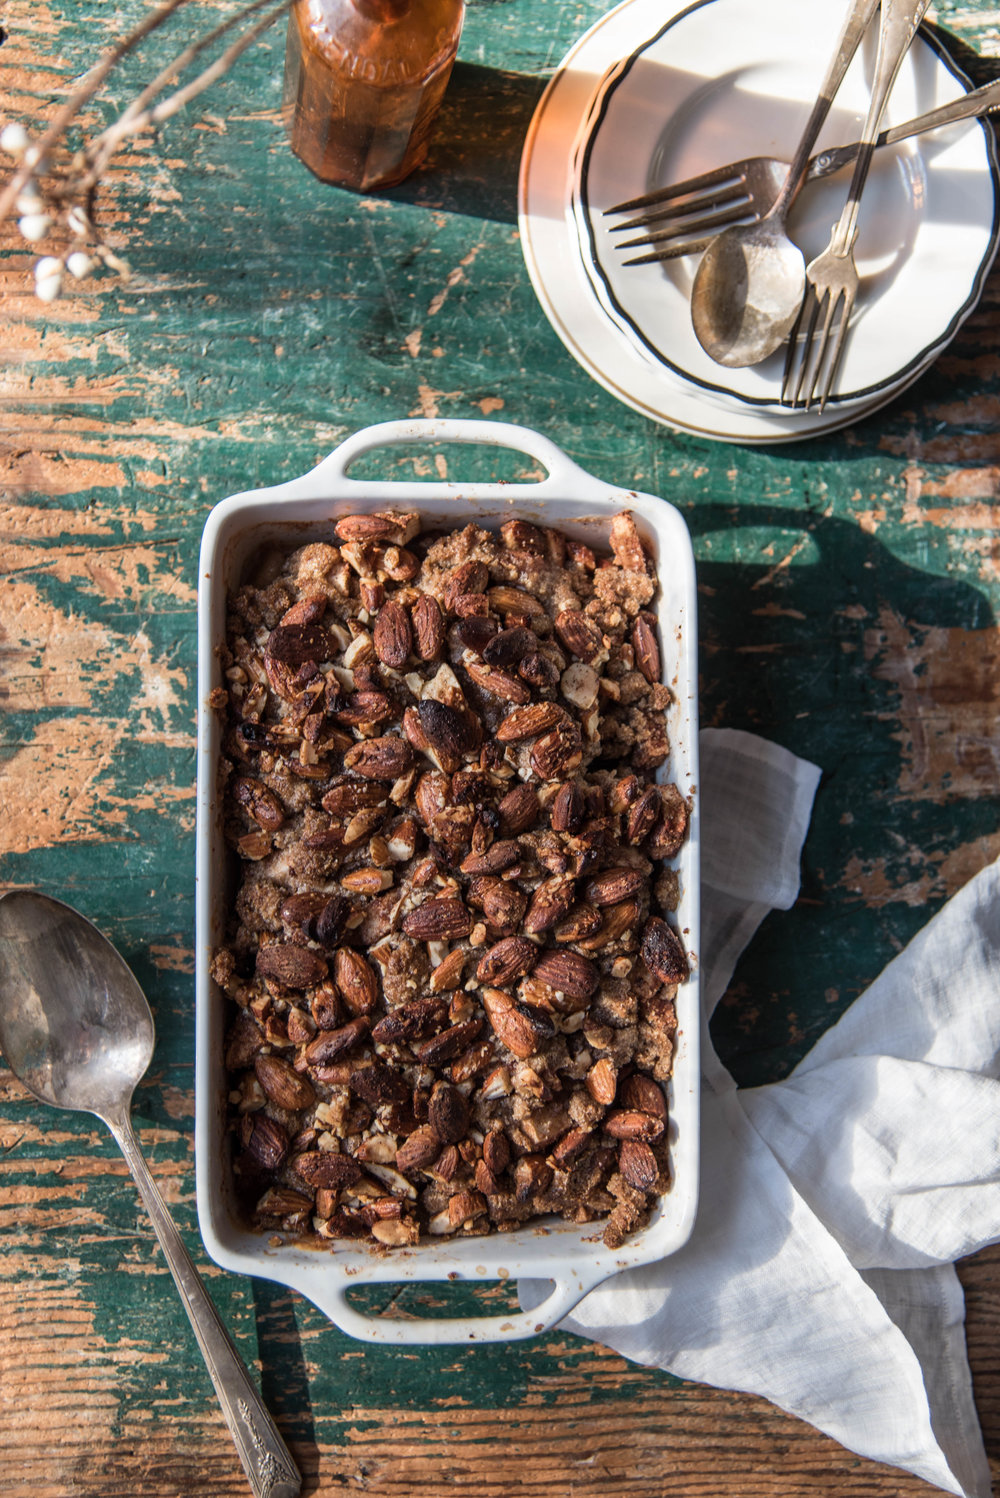 ROSE & IVY Journal Apple & Spiced Almond Crumble